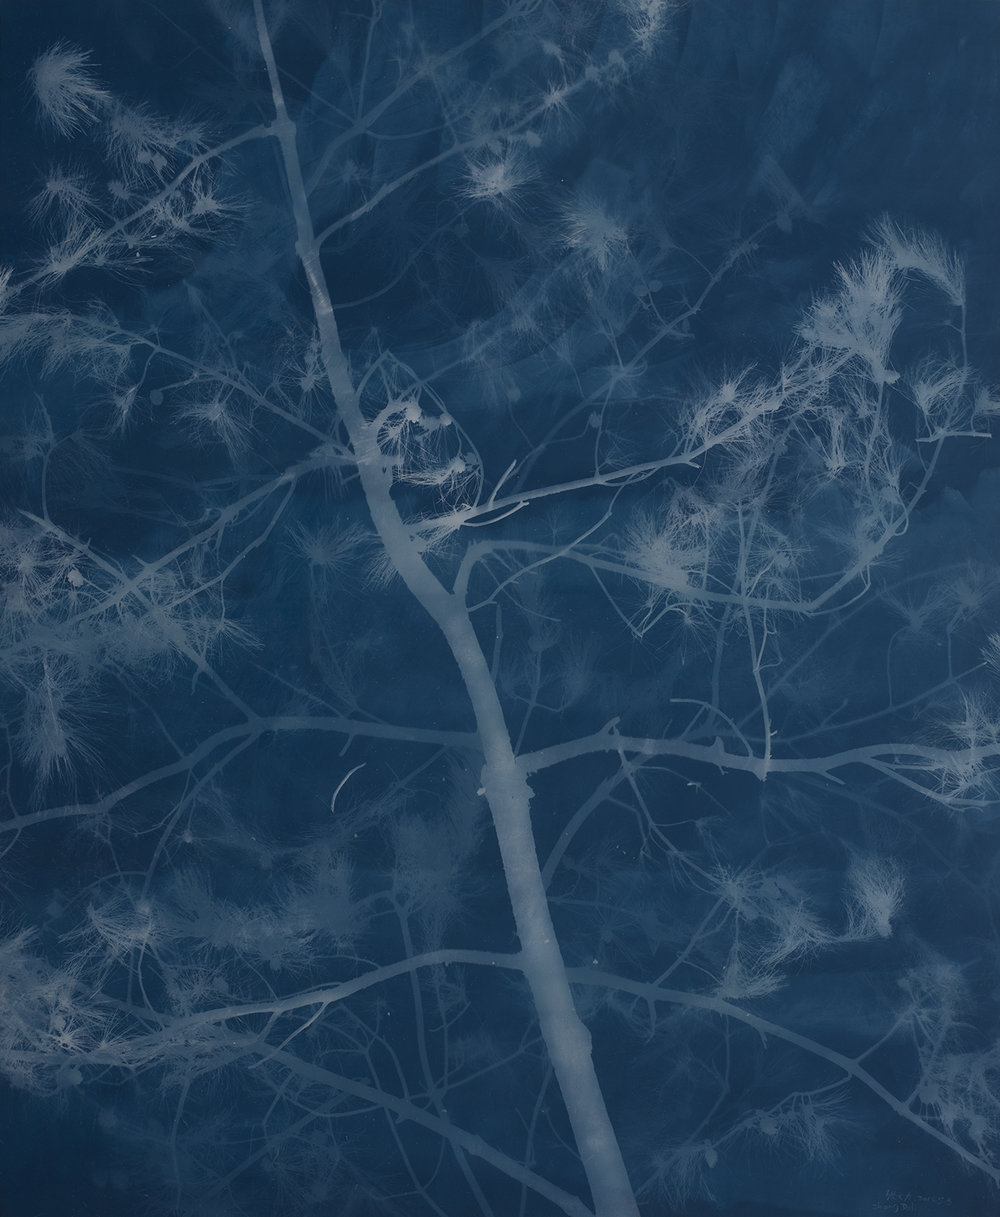 Pine (18), Cyanotype on Canvas, 279 X 230 cm, 2016 | Photo Copyright Artist Zhang Dali and Courtesy of Pékin Fine Arts